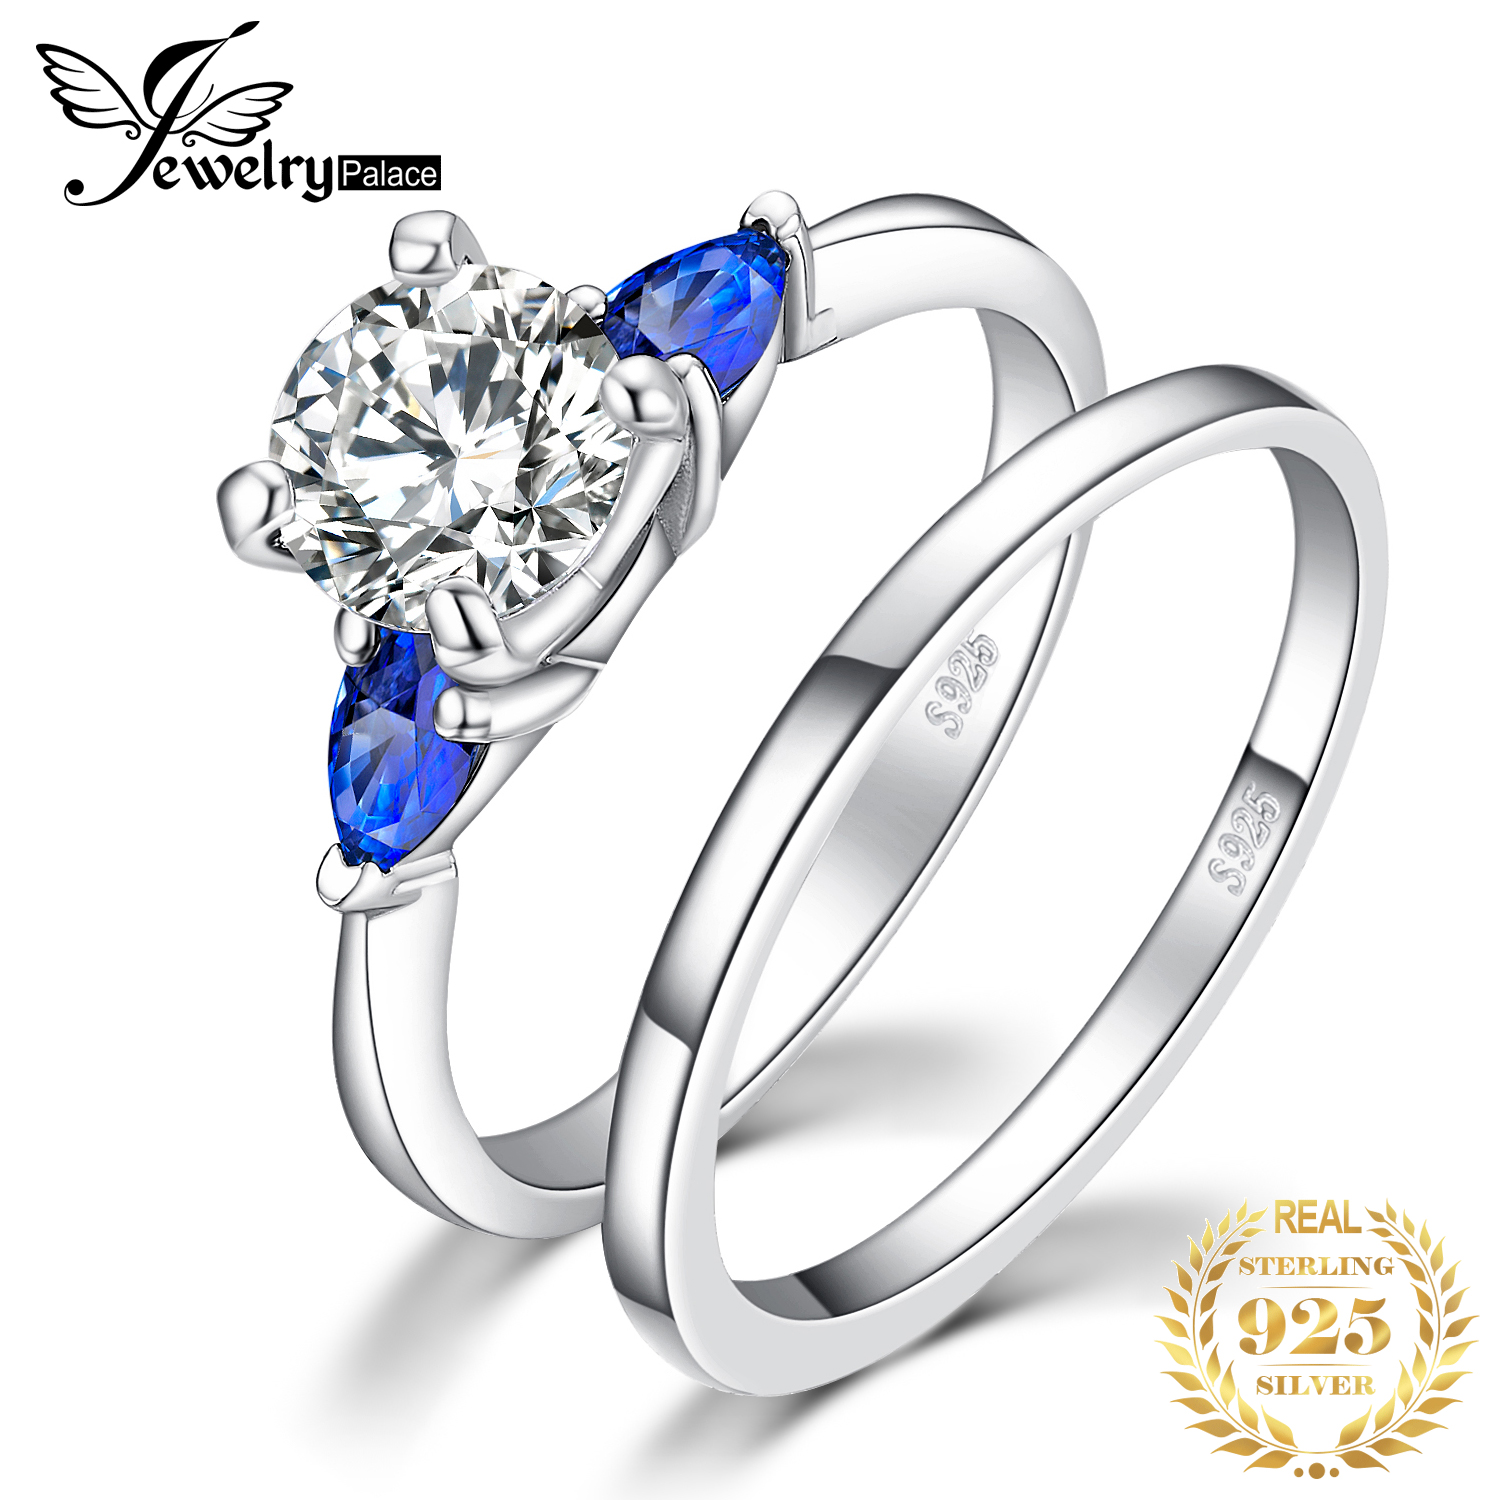 This is a graphic of JPalace 40 Stone Created Sapphire Engagement Ring 40 Sterling Silver Rings for Women Wedding Rings Bridal Set Silver 40 Jewelry